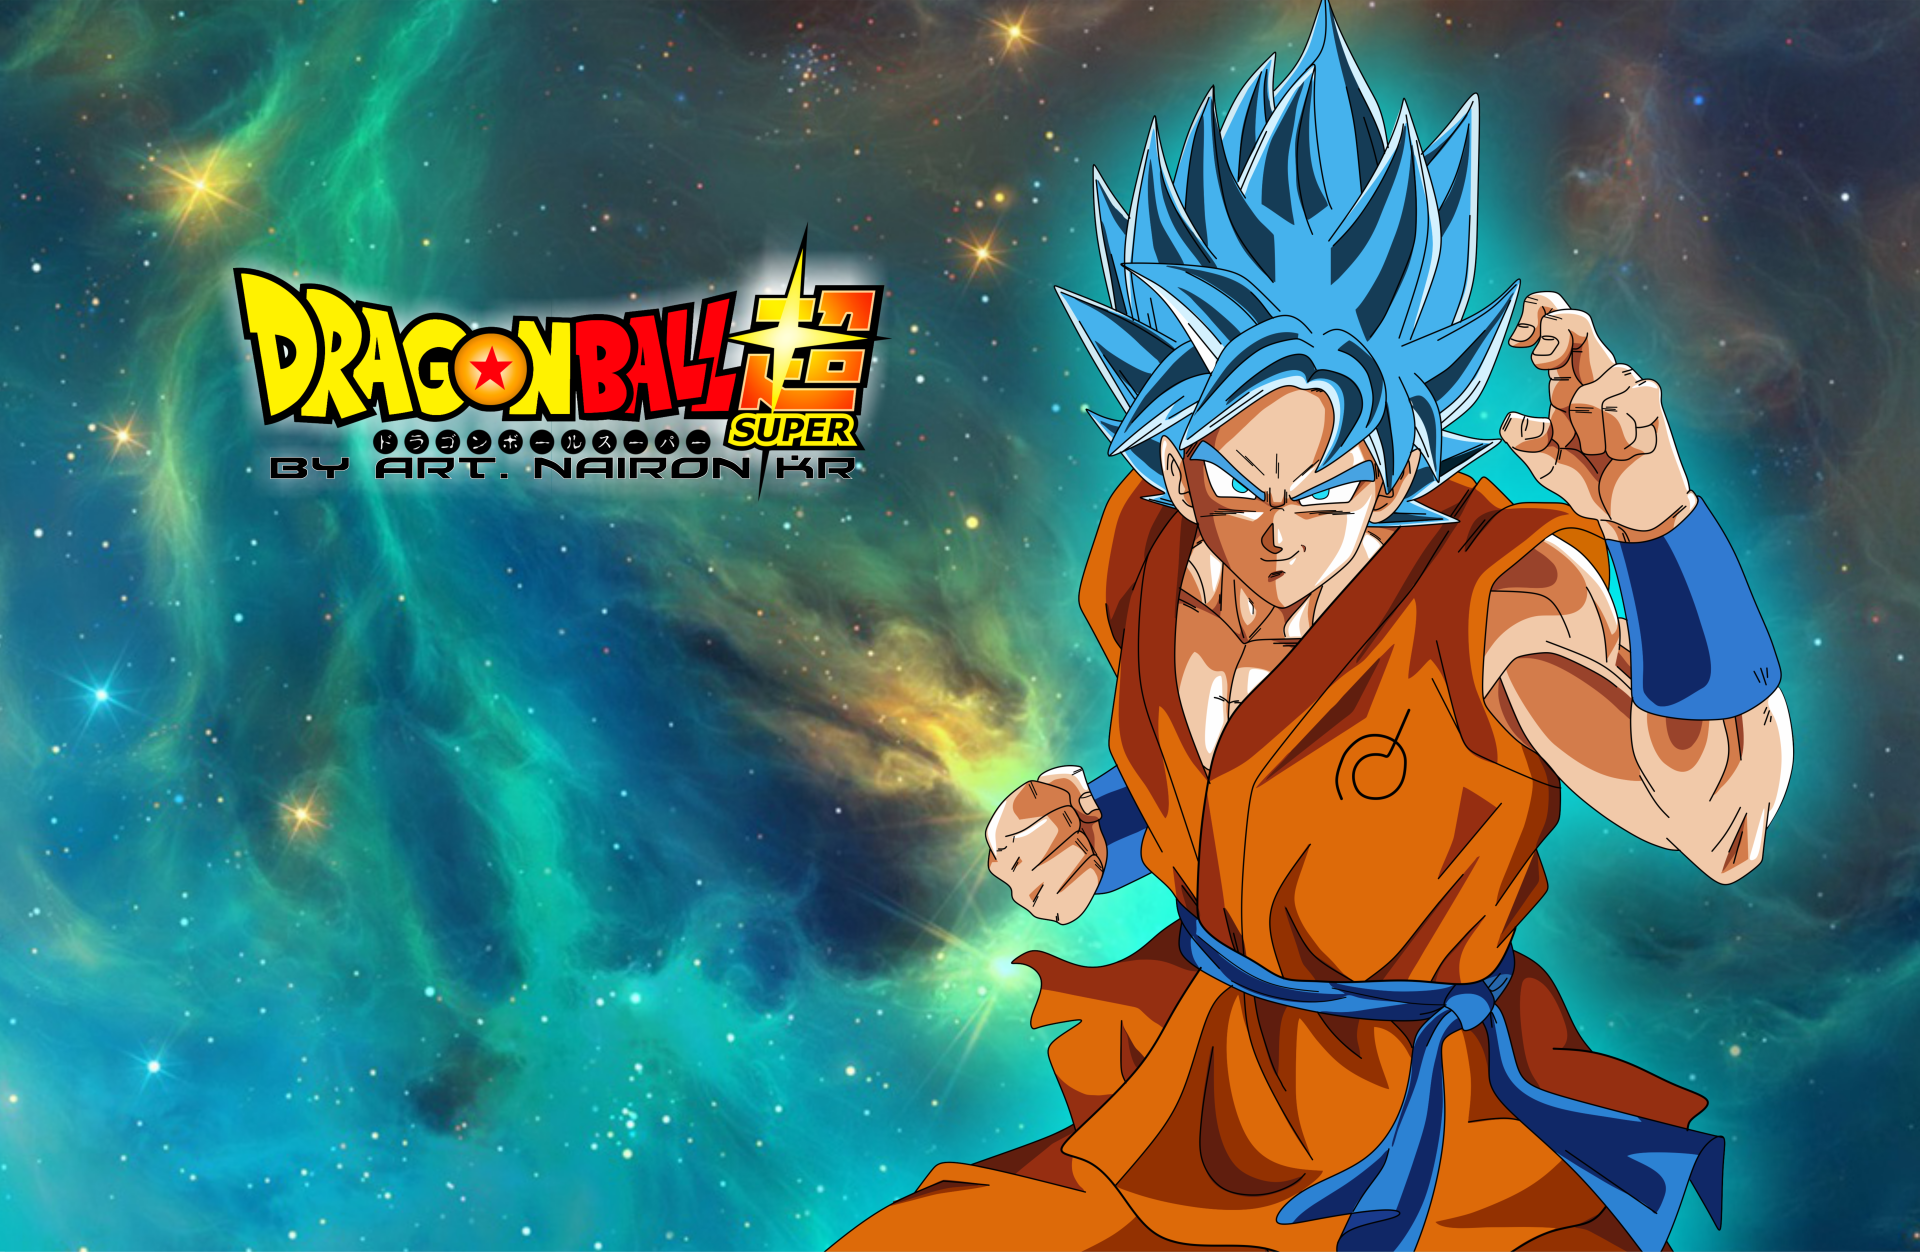 Dragon Ball Super Wallpaper Images Cli 971496 Png Images Pngio